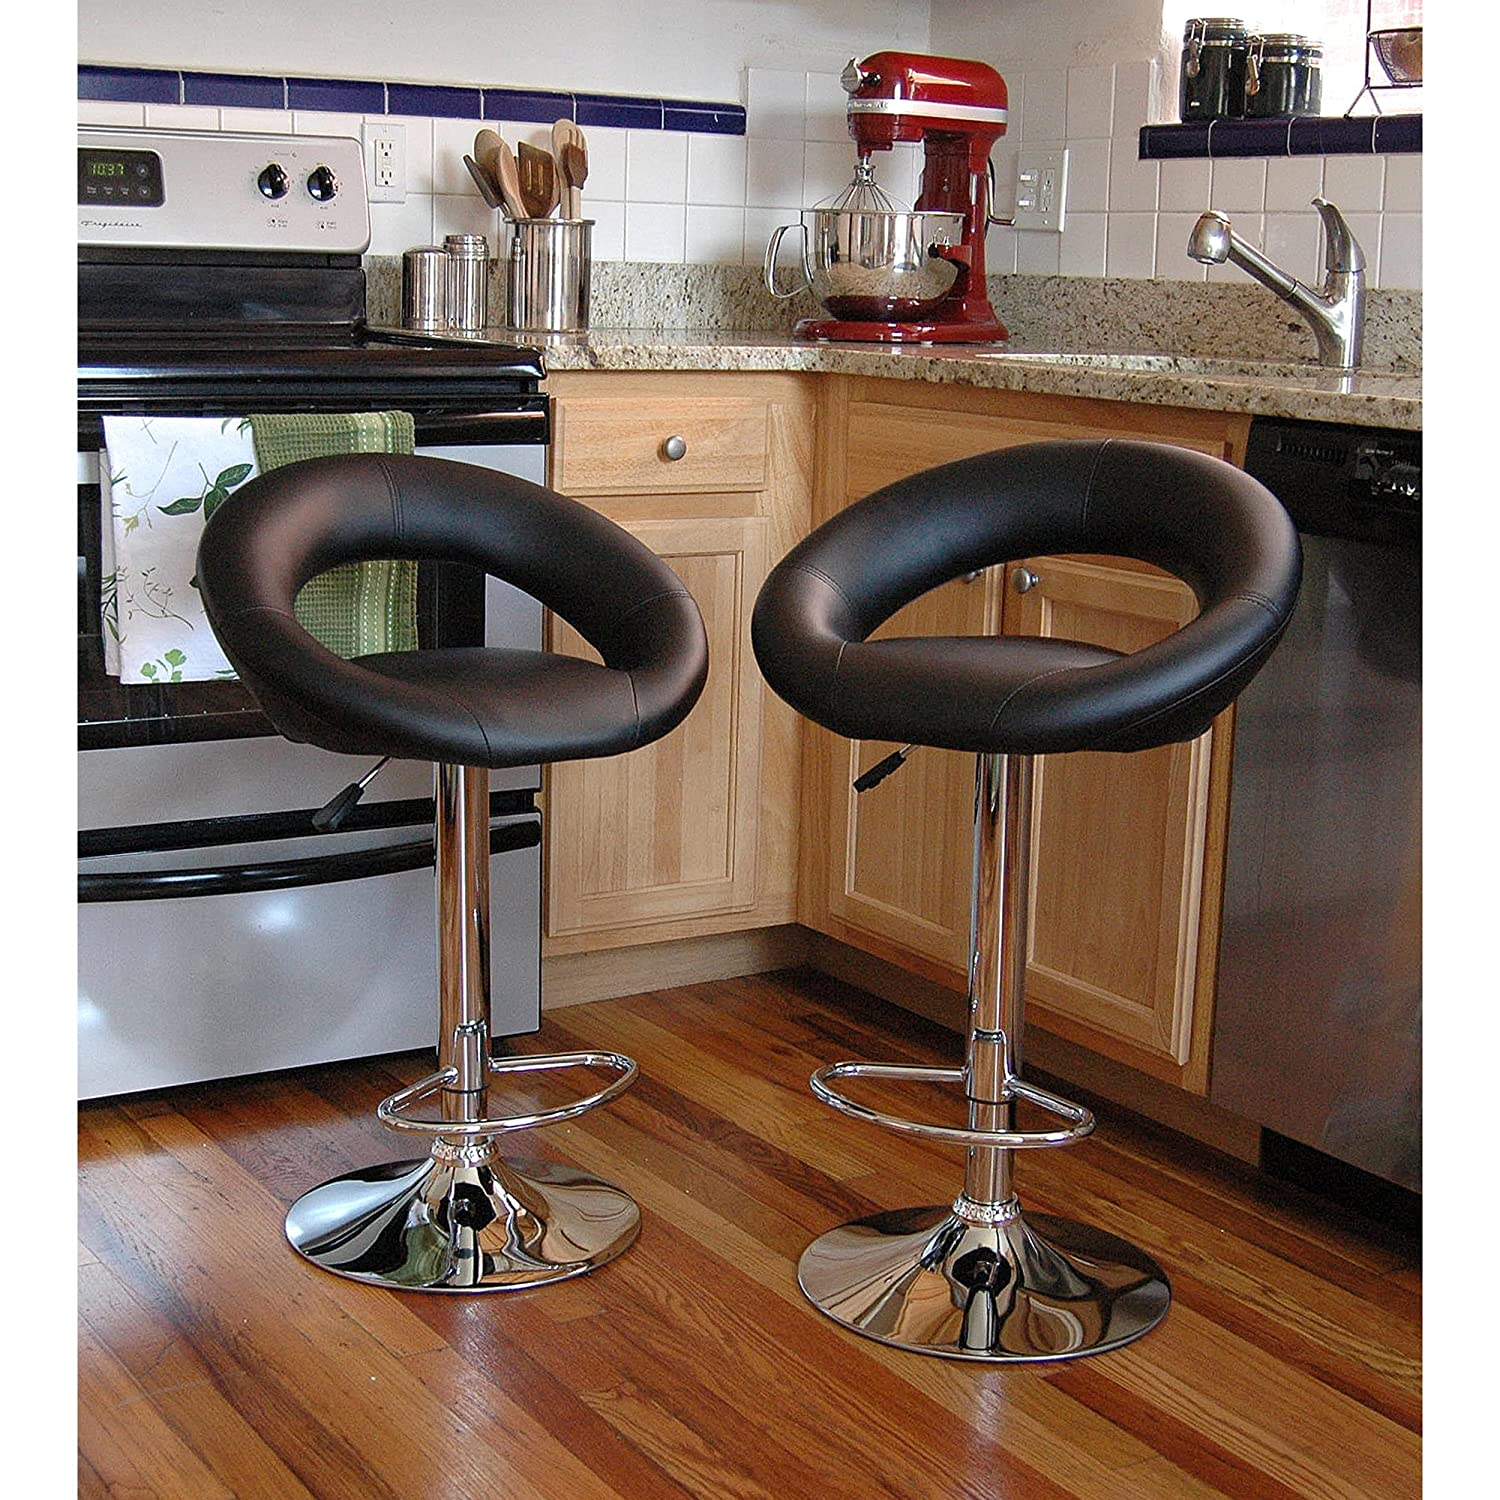 Kitchen Swivel Bar Stools Bar Stool Set 2 Piece Adjustable Height Seat Chair Swivel